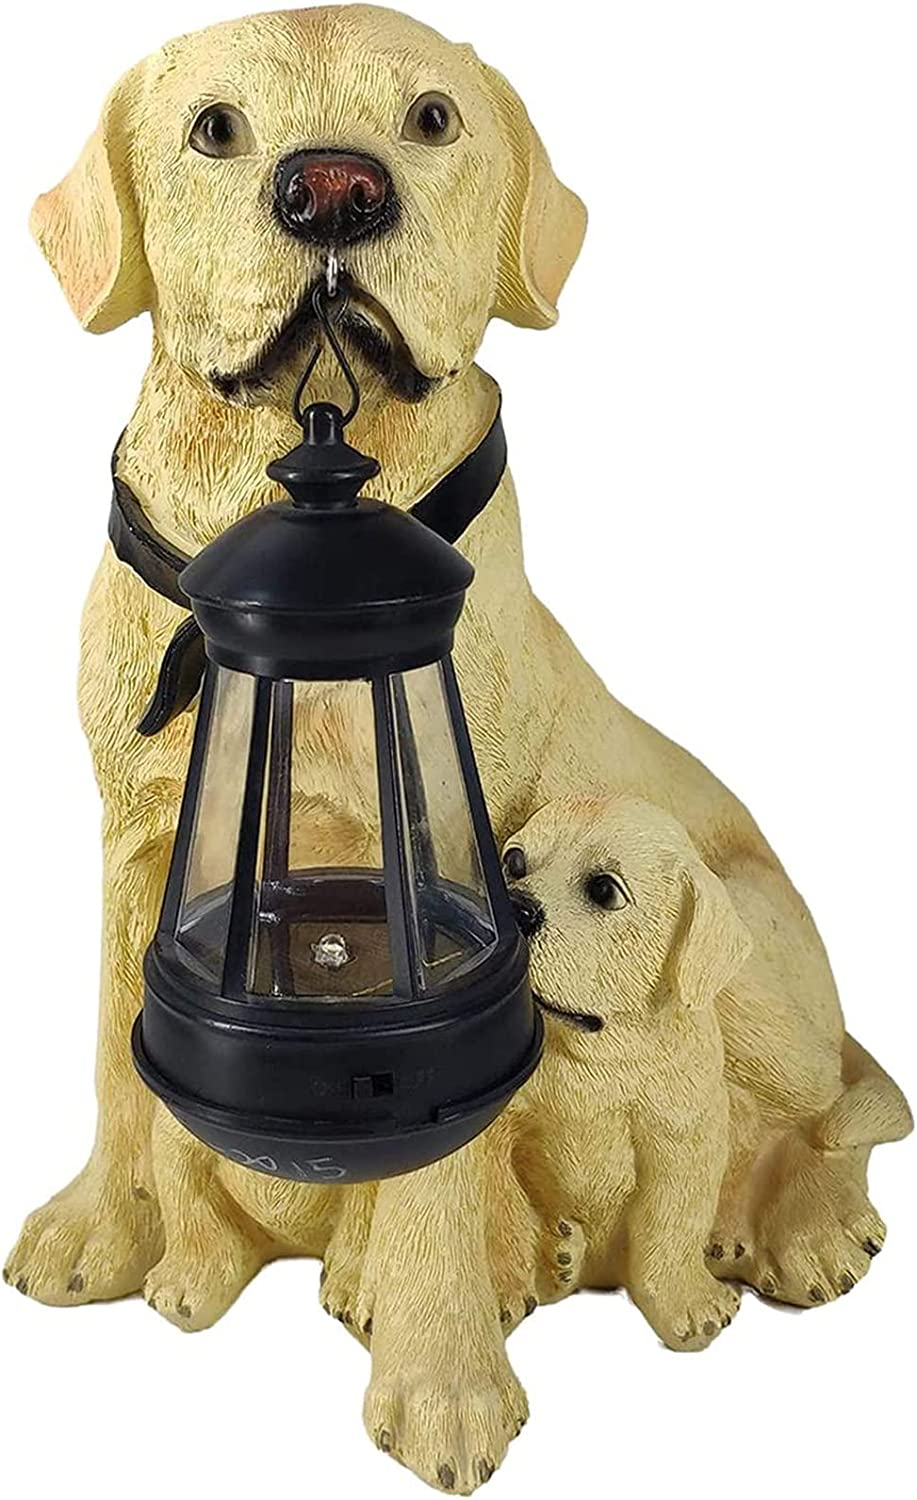 HELOU Washington Mall Solar Light Outdoor Dogs Ornament Resin Max 45% OFF Labrad Exquisite